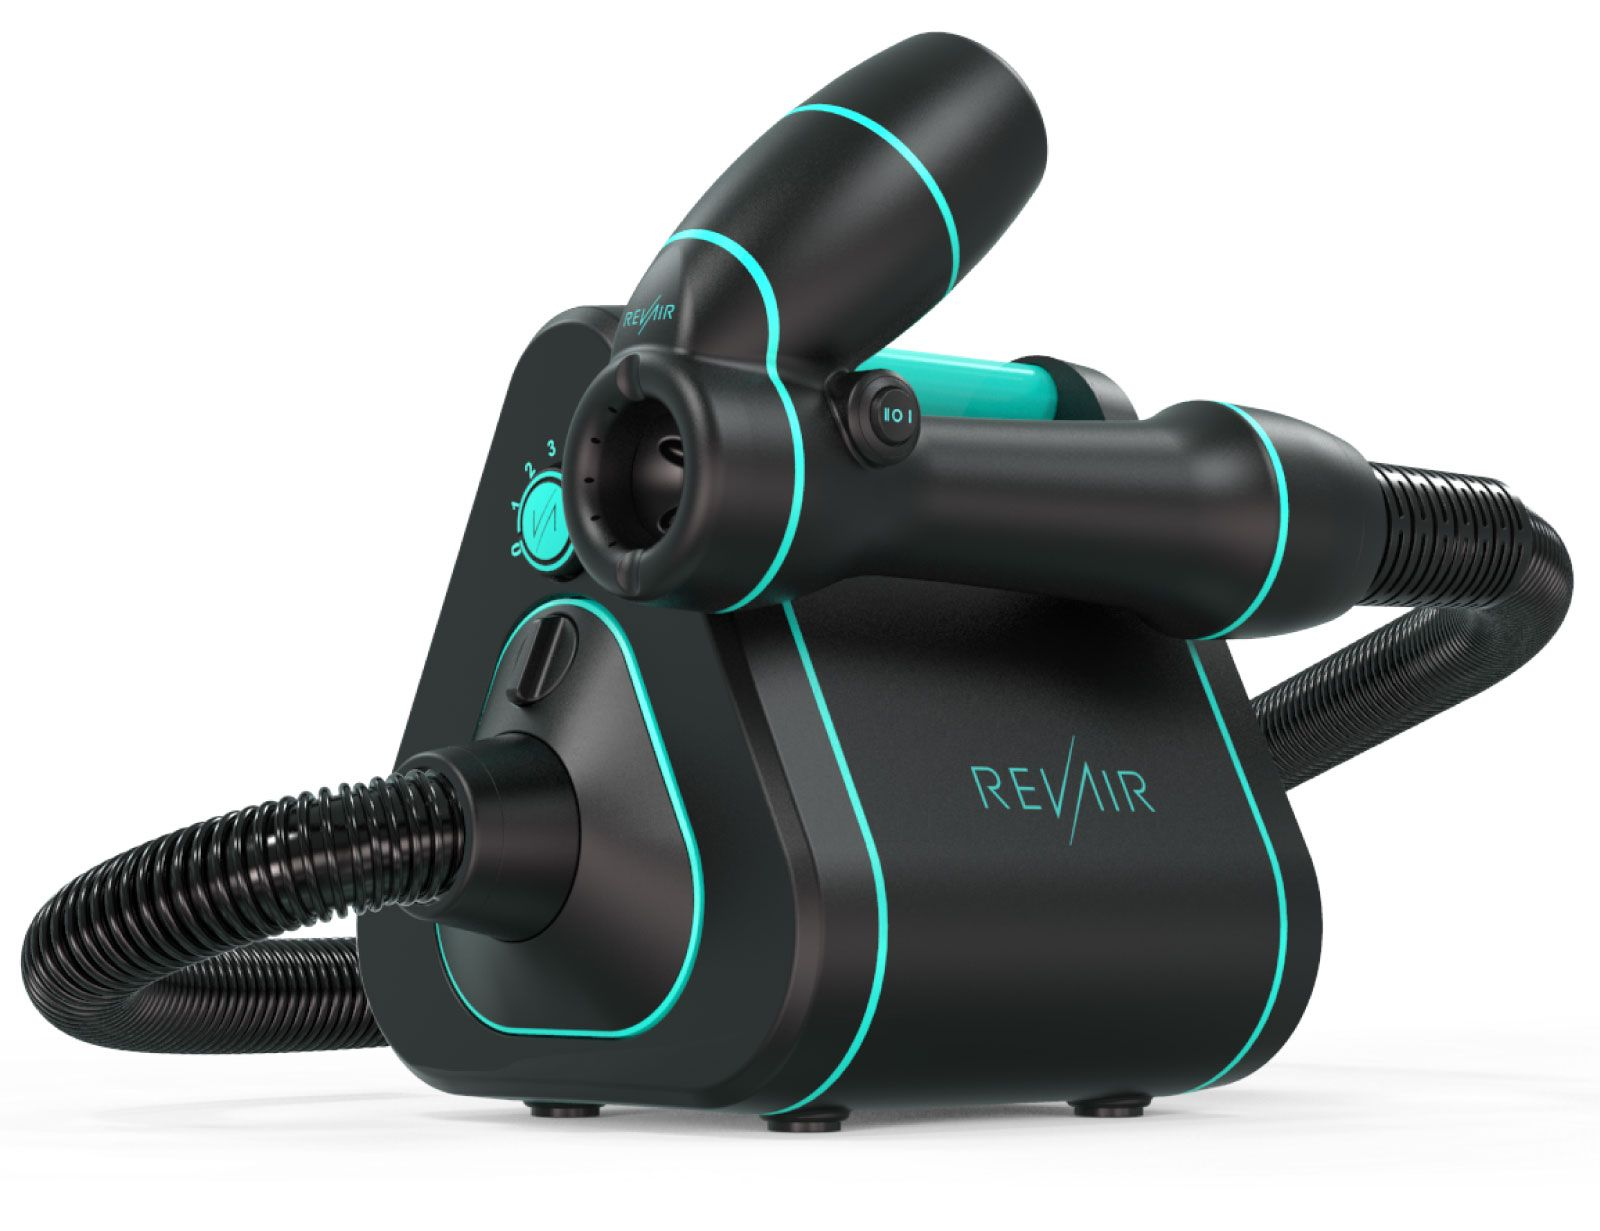 The Best Hair Dryer and Straightener All In One RevAir